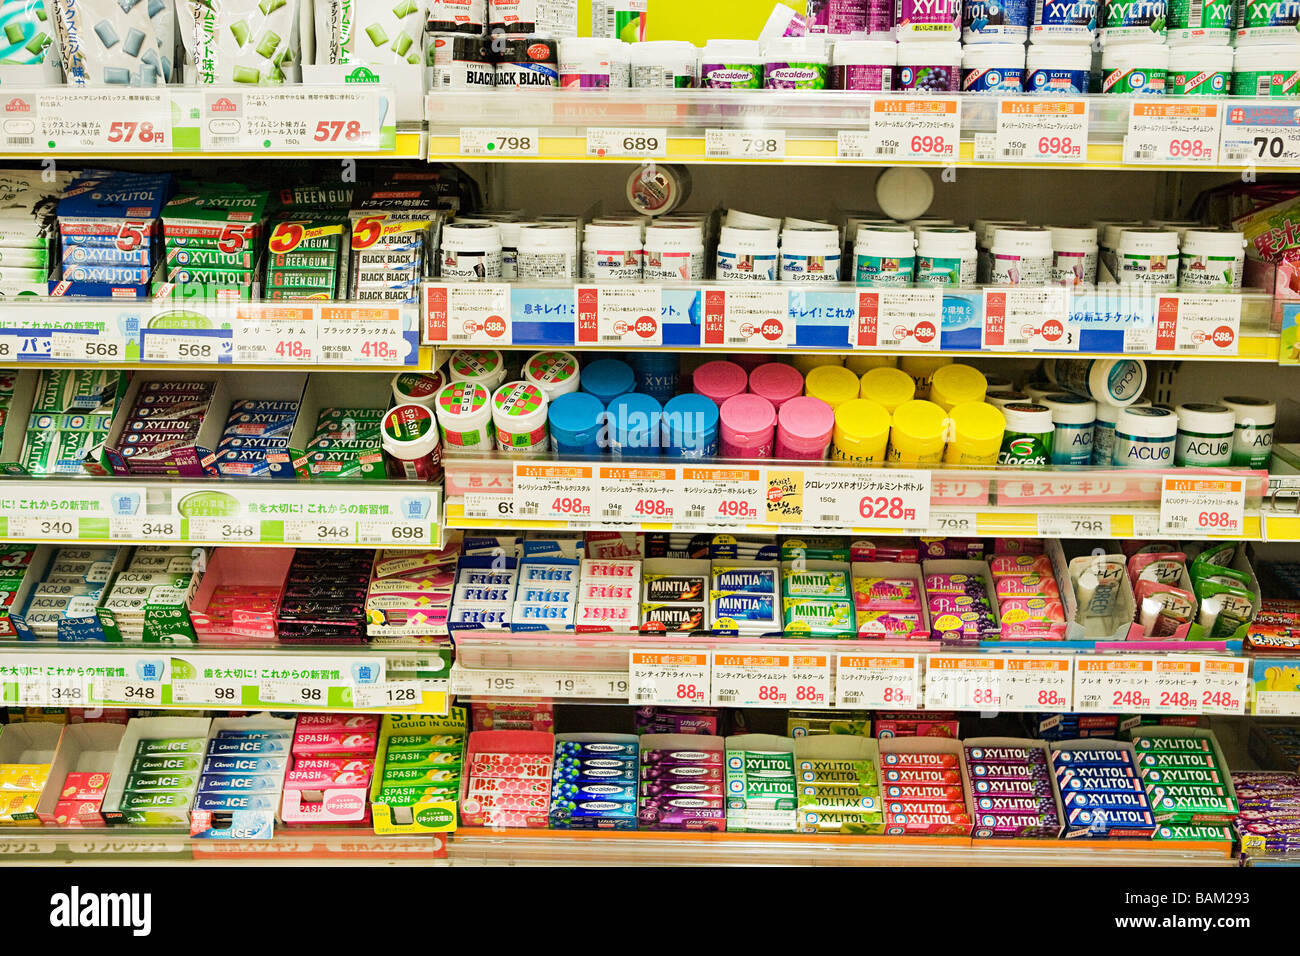 Chewing gum on a supermarket shelf - Stock Image